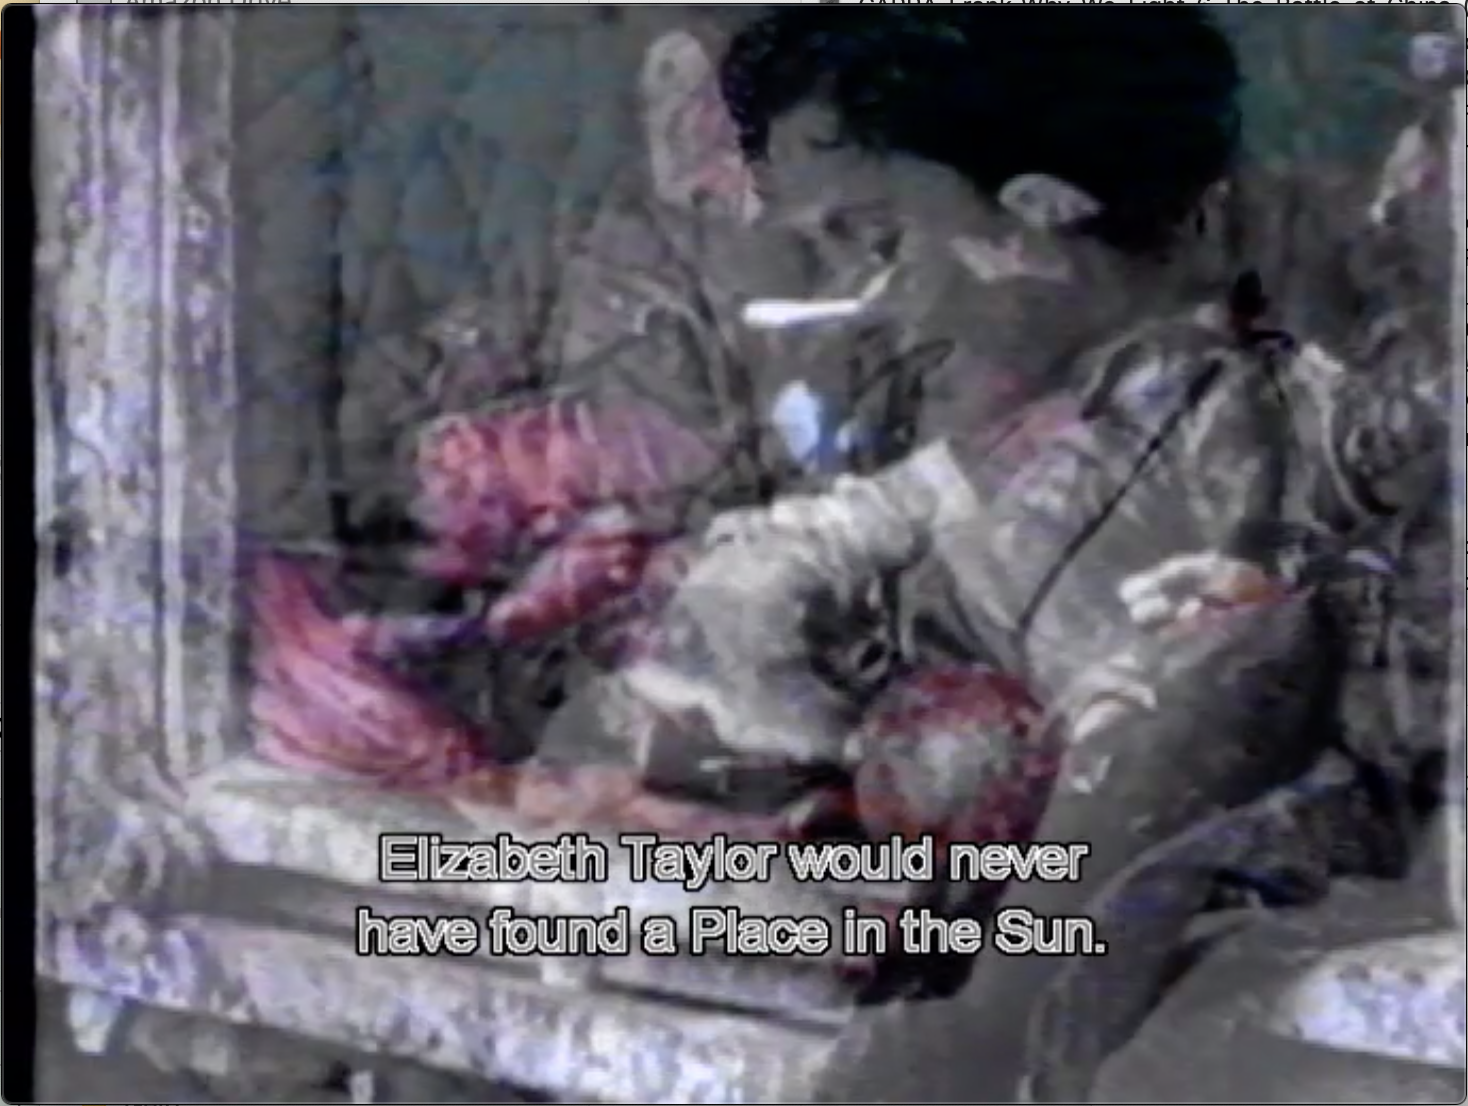 """The image shows a still taken from Jean-Luc Godard's film Histoire(s) du cinema. The subtitle reads """"Elizabeth Taylor would never have found a Place in the Sun."""